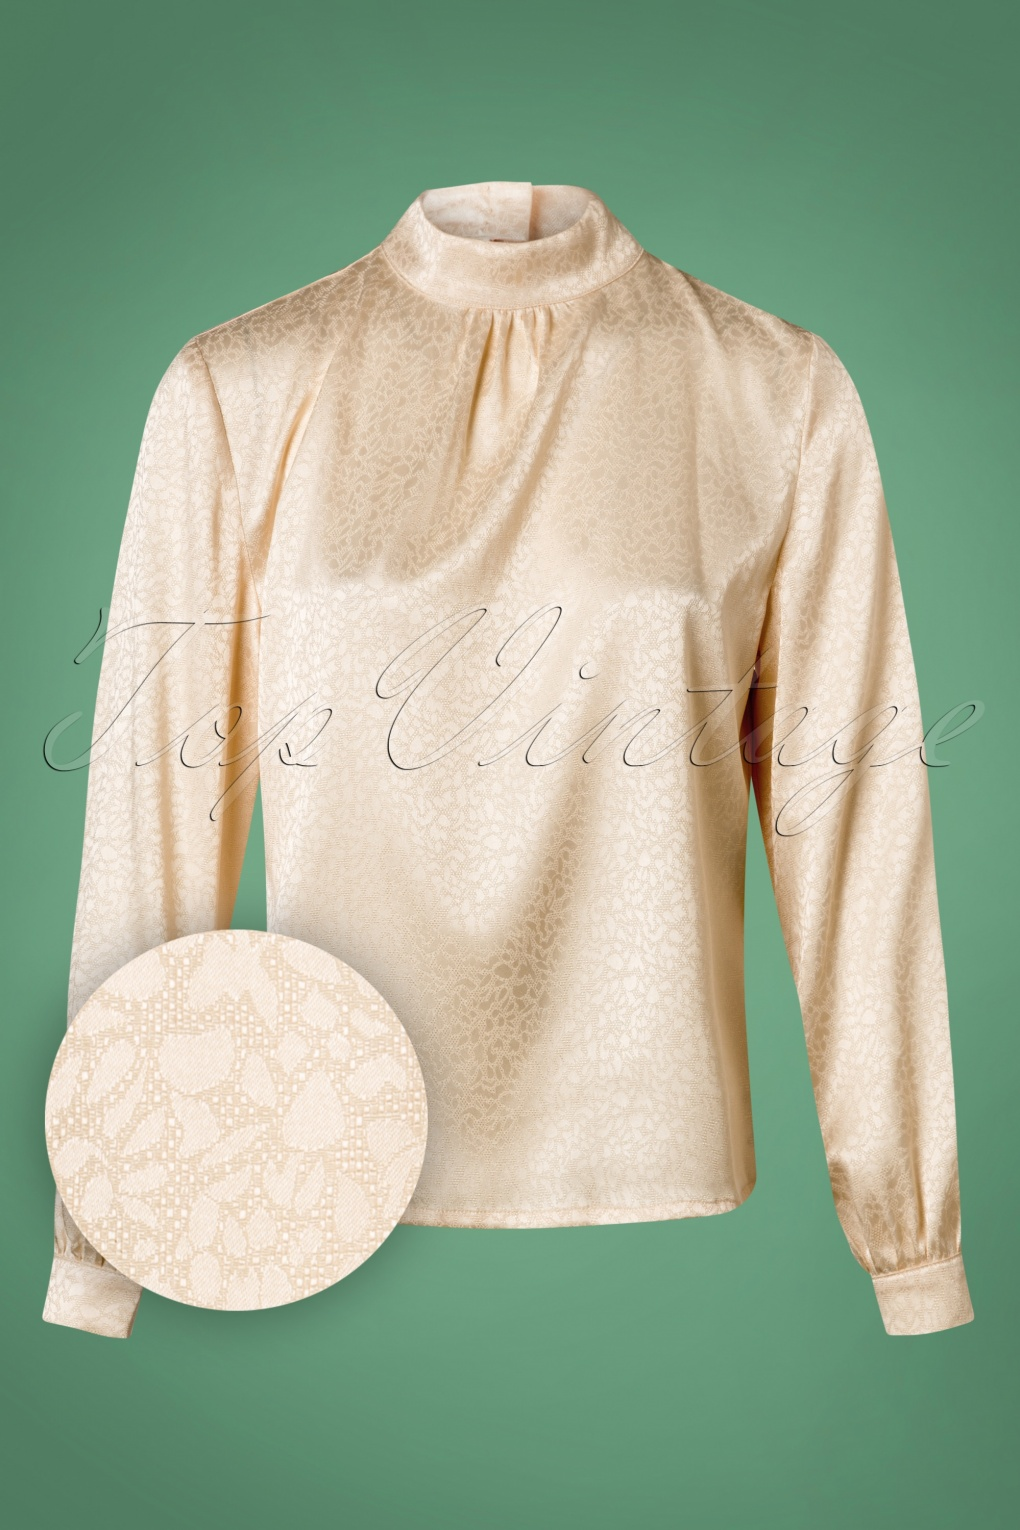 1950s Rockabilly & Pin Up Tops, Blouses, Shirts 40s Natalie Blouse in Cream £25.43 AT vintagedancer.com